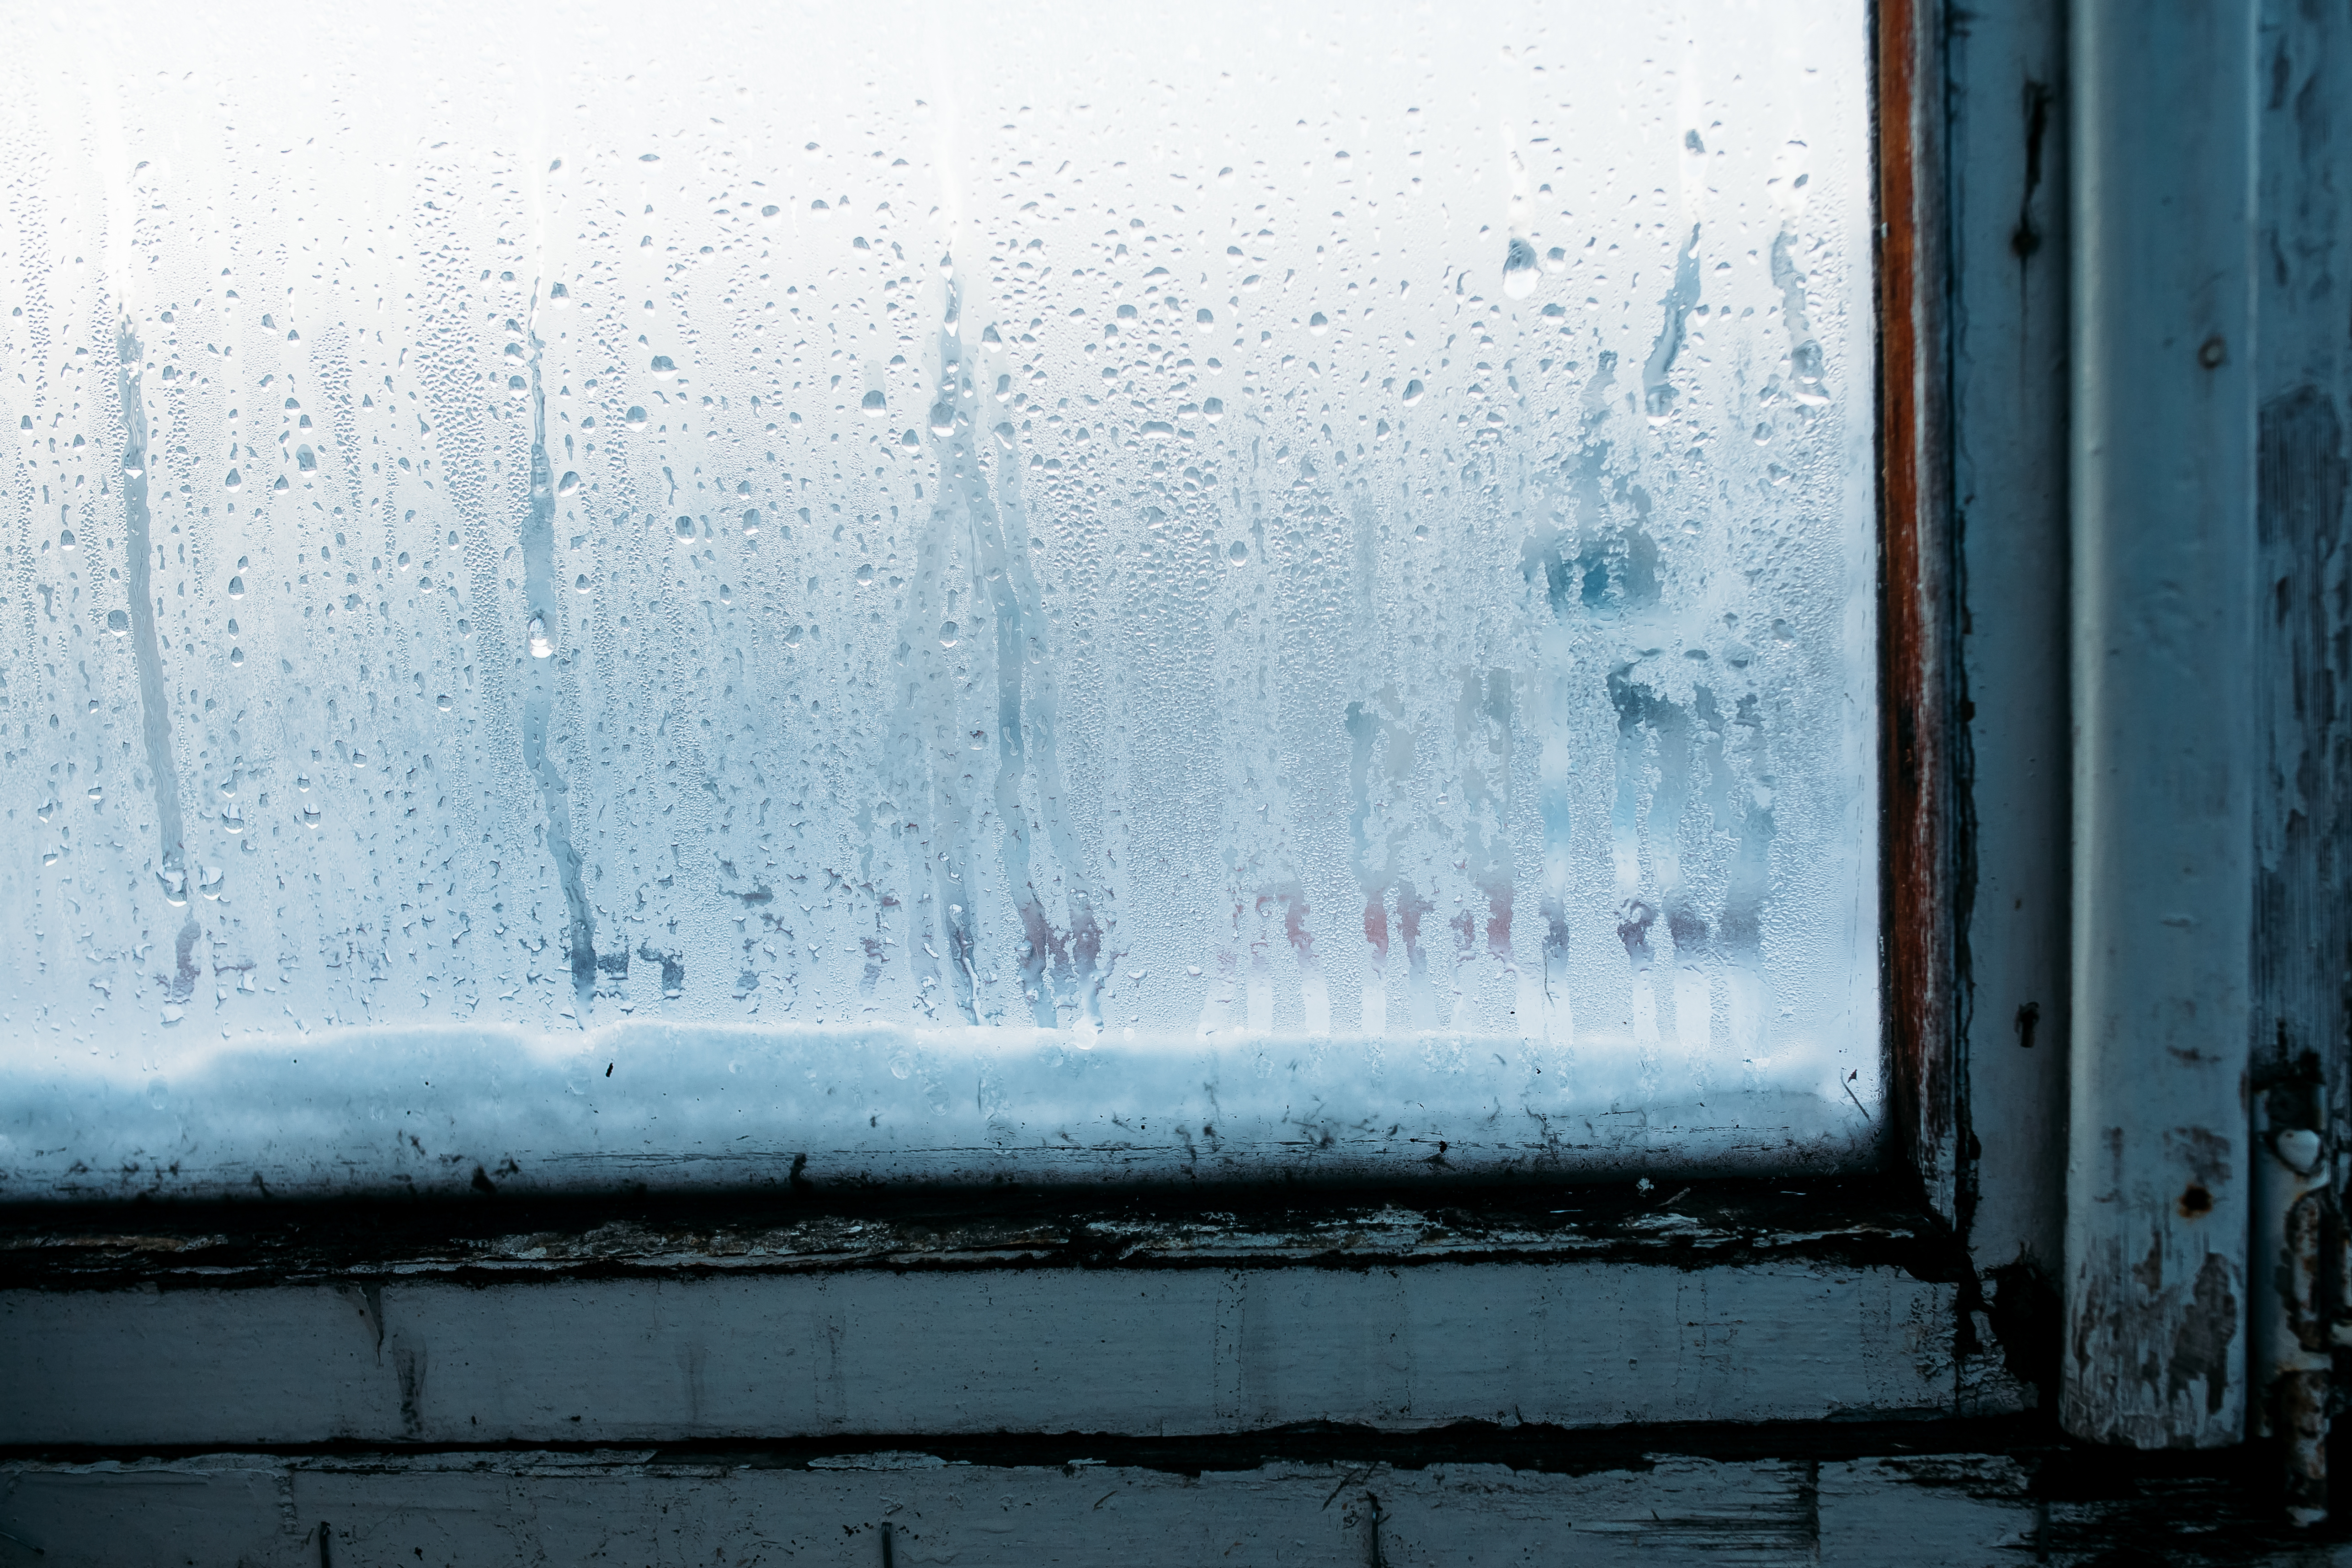 Common Problems with Weak Window Frames Near Lexington, Kentucky (KY) like Condensation